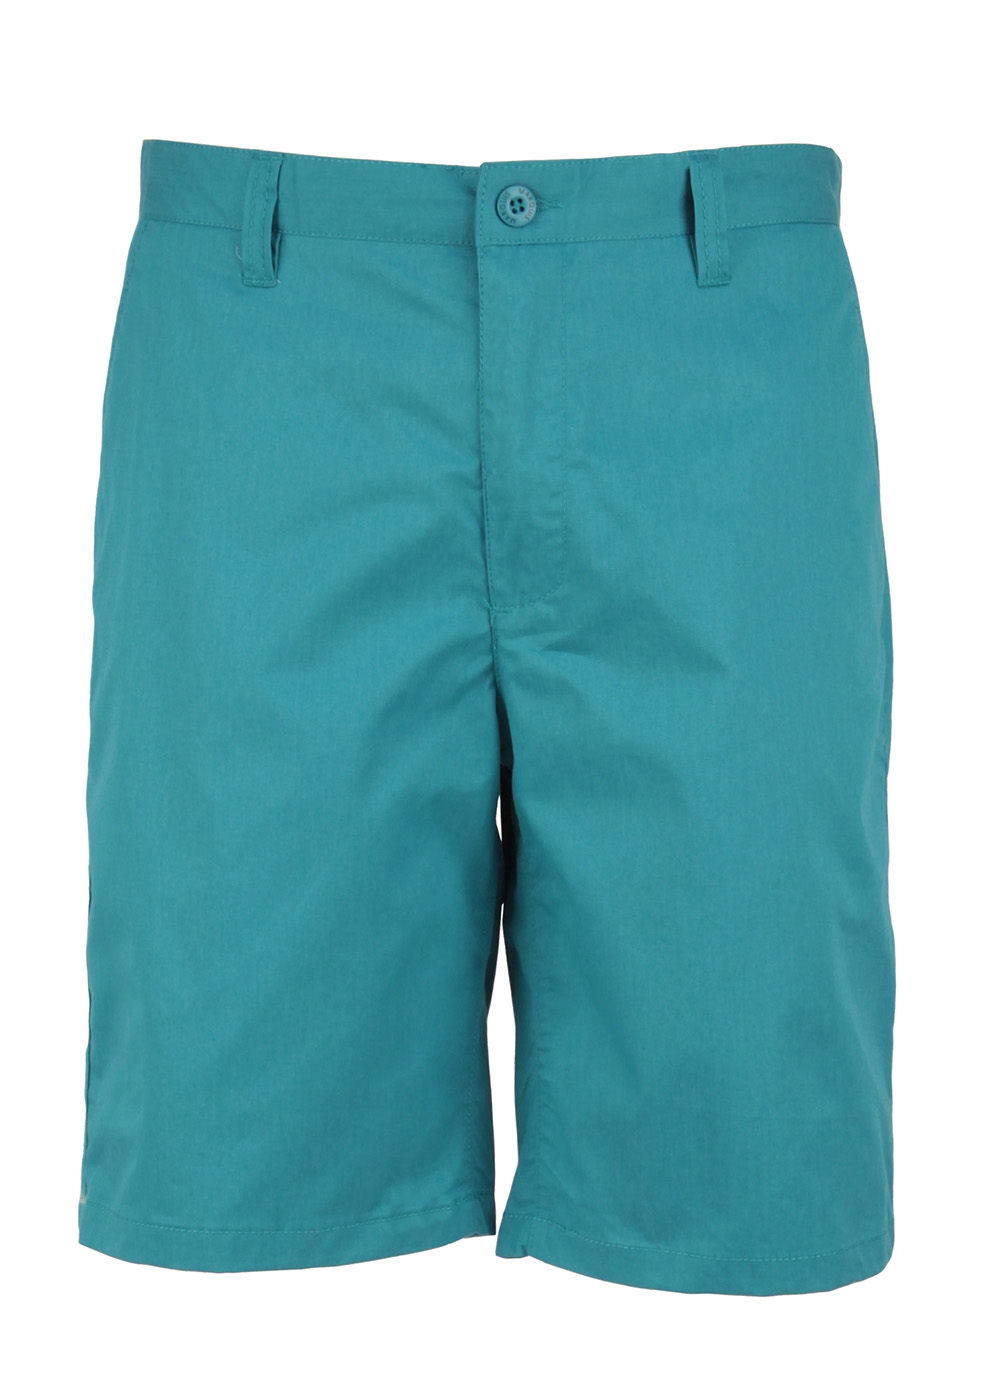 CS 007 - Teal (front)